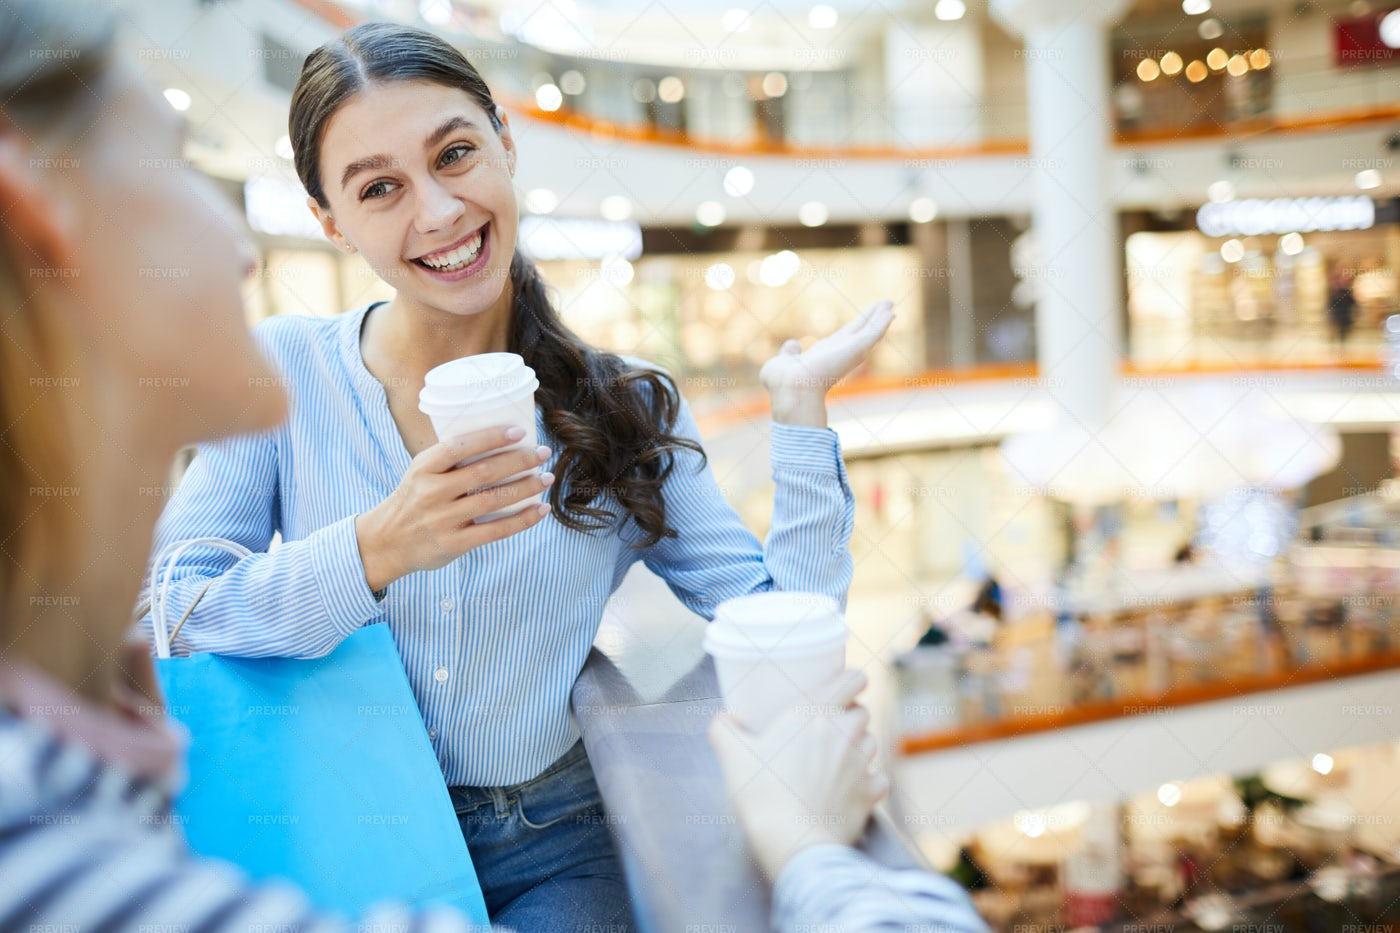 Having Drink In The Mall: Stock Photos